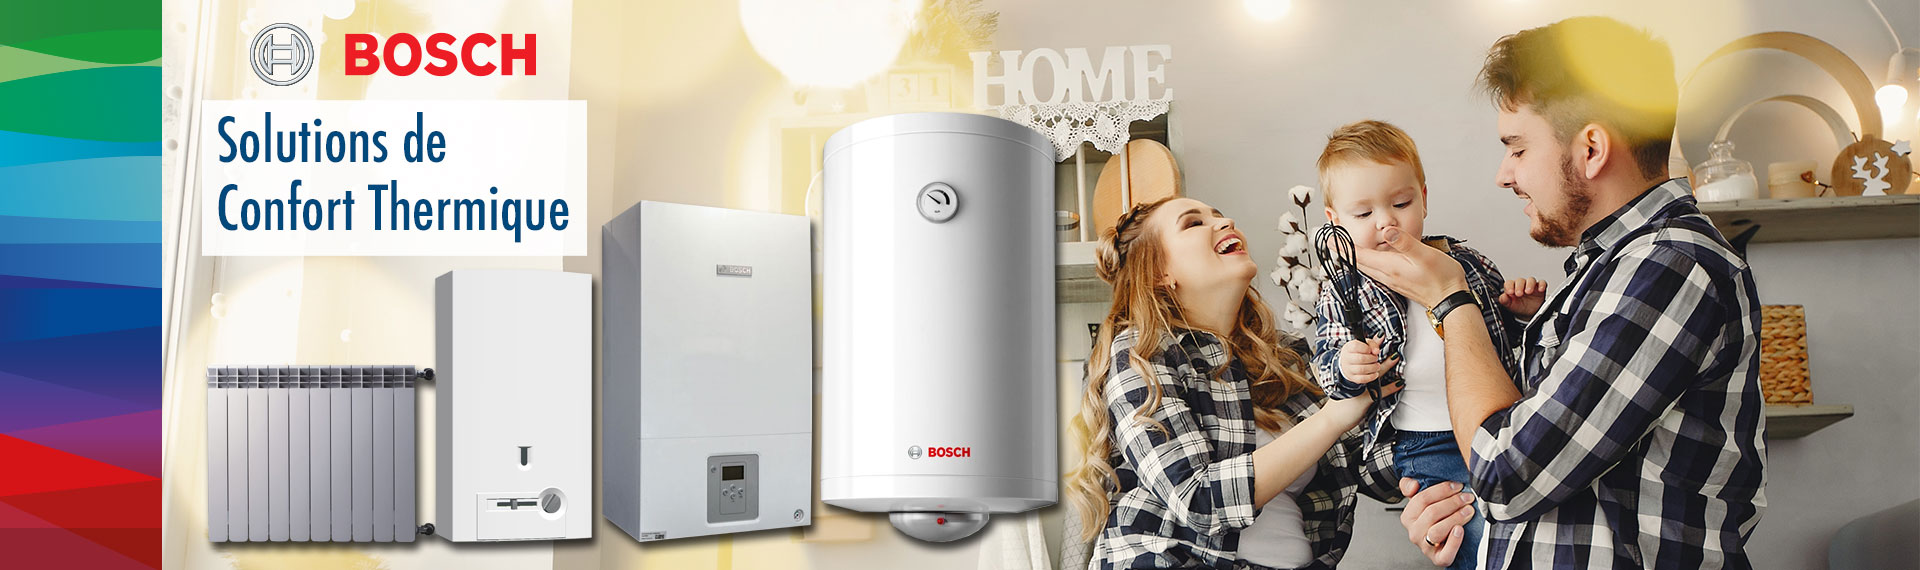 Thermo Bosch